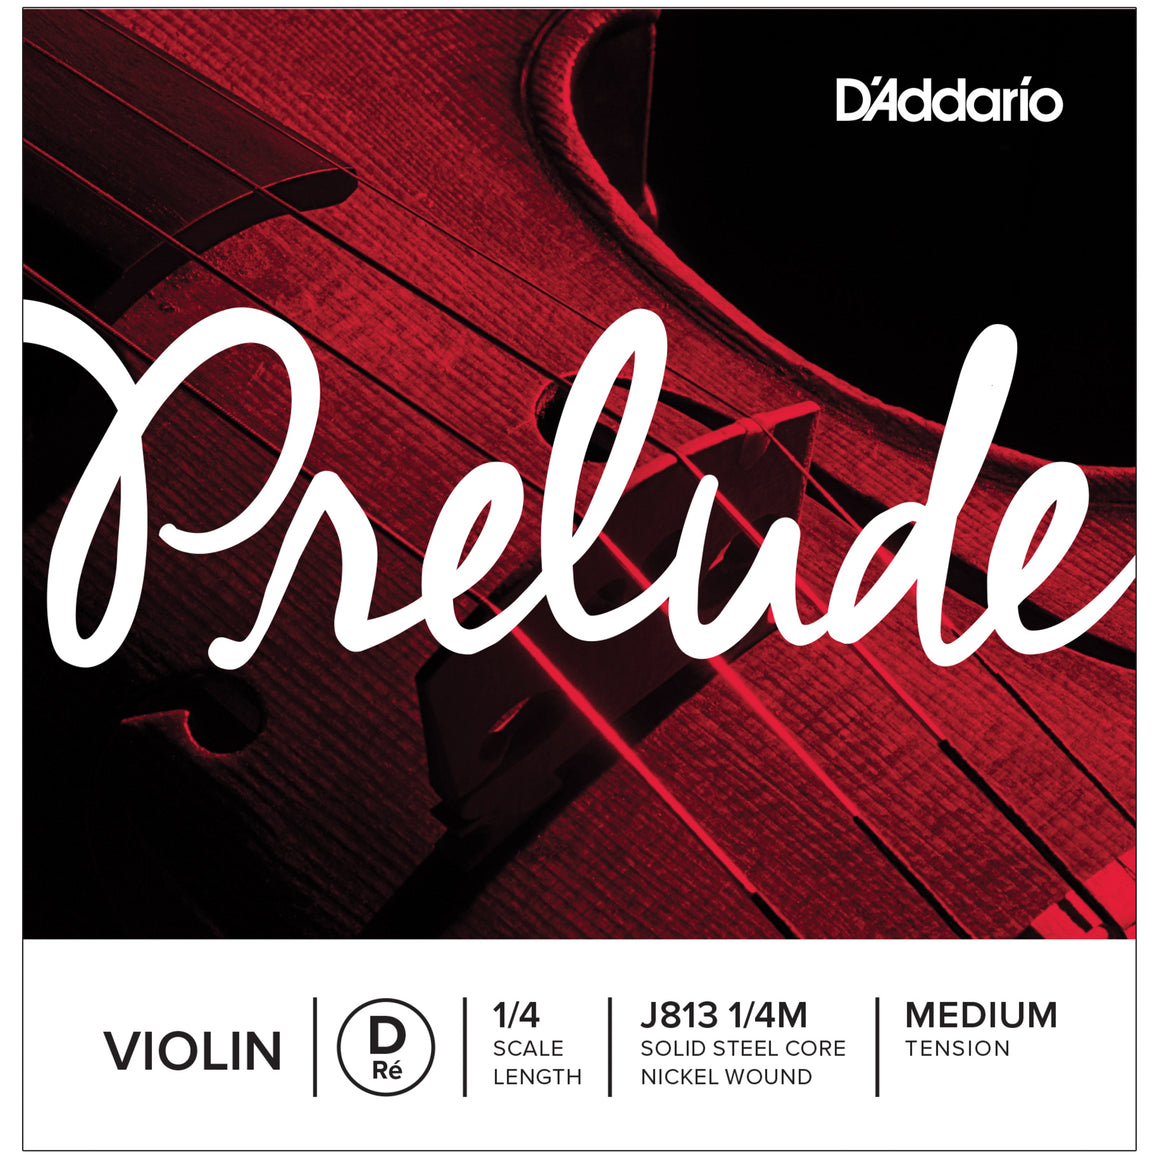 D'Addario Prelude 1/4 D Violin Single String Medium J813